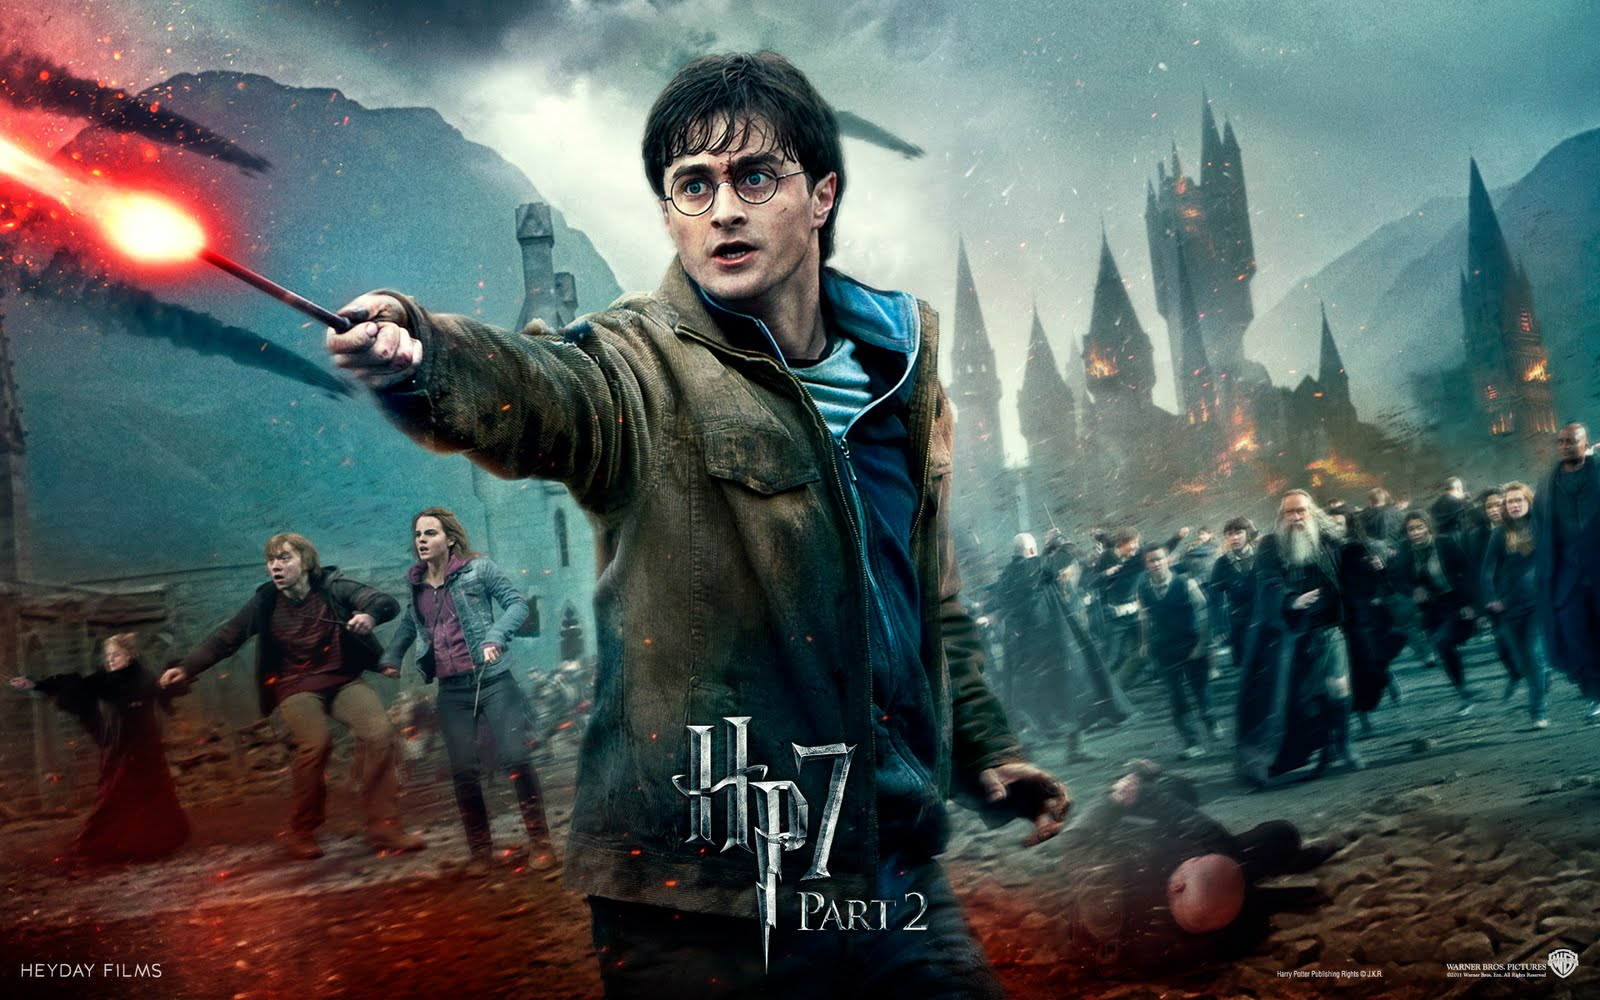 Harry Potter and The Deathly Hallows Part 2 Wallpapers 3   SPG Studios 1600x1000